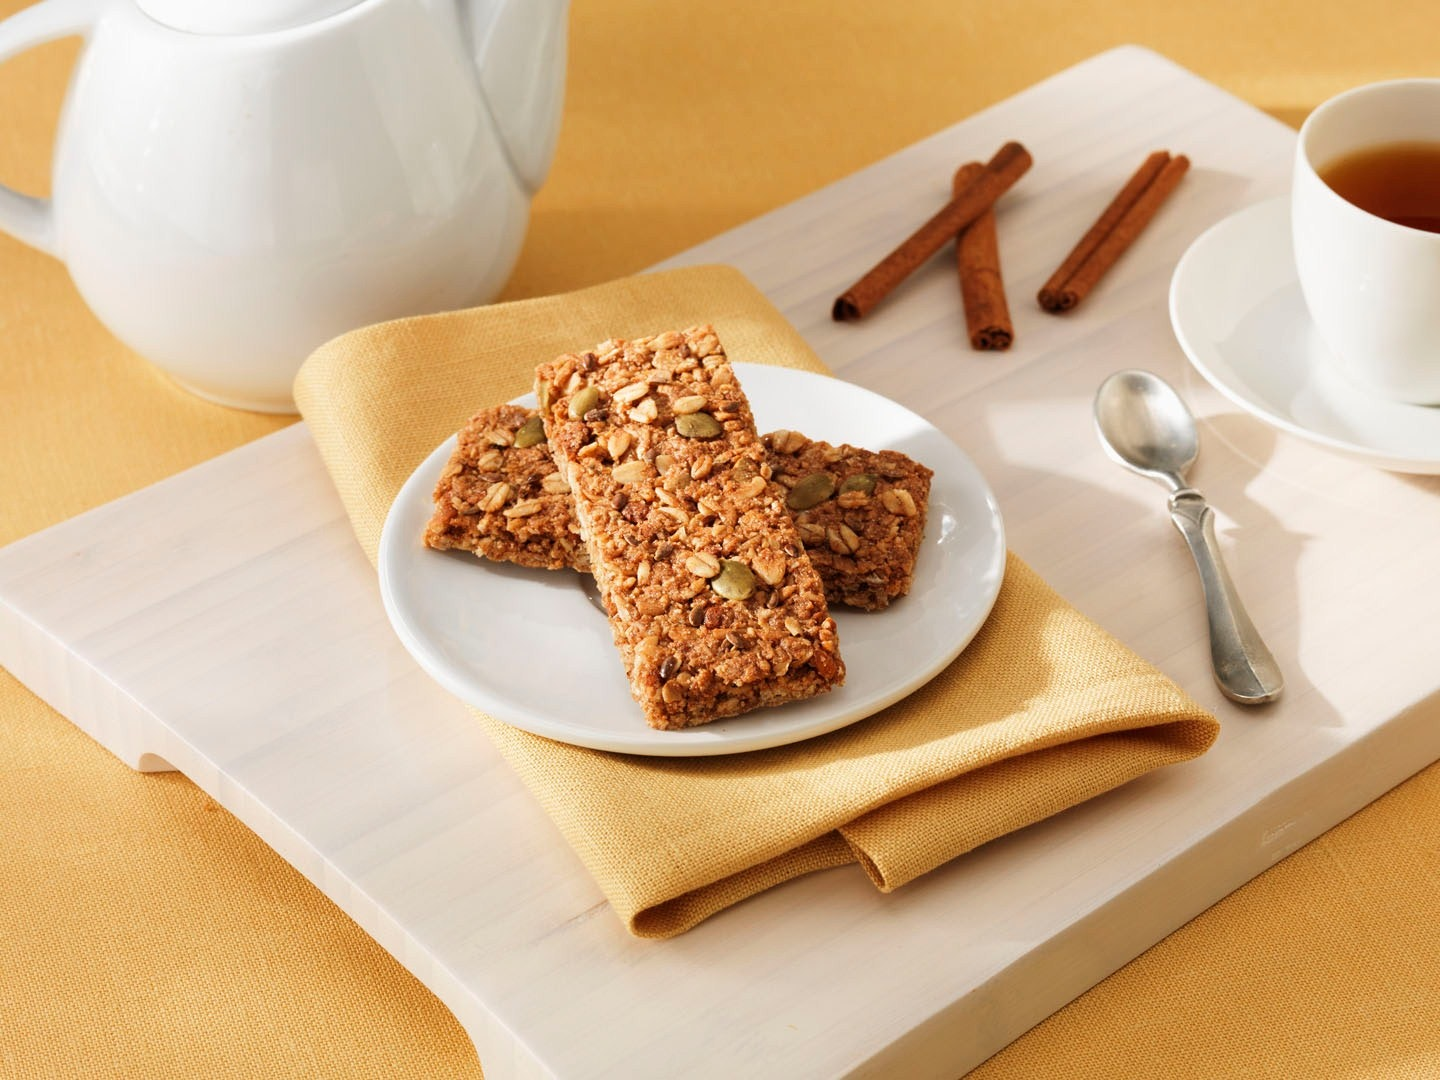 These health-smart, pumpkin-flavored granola bars